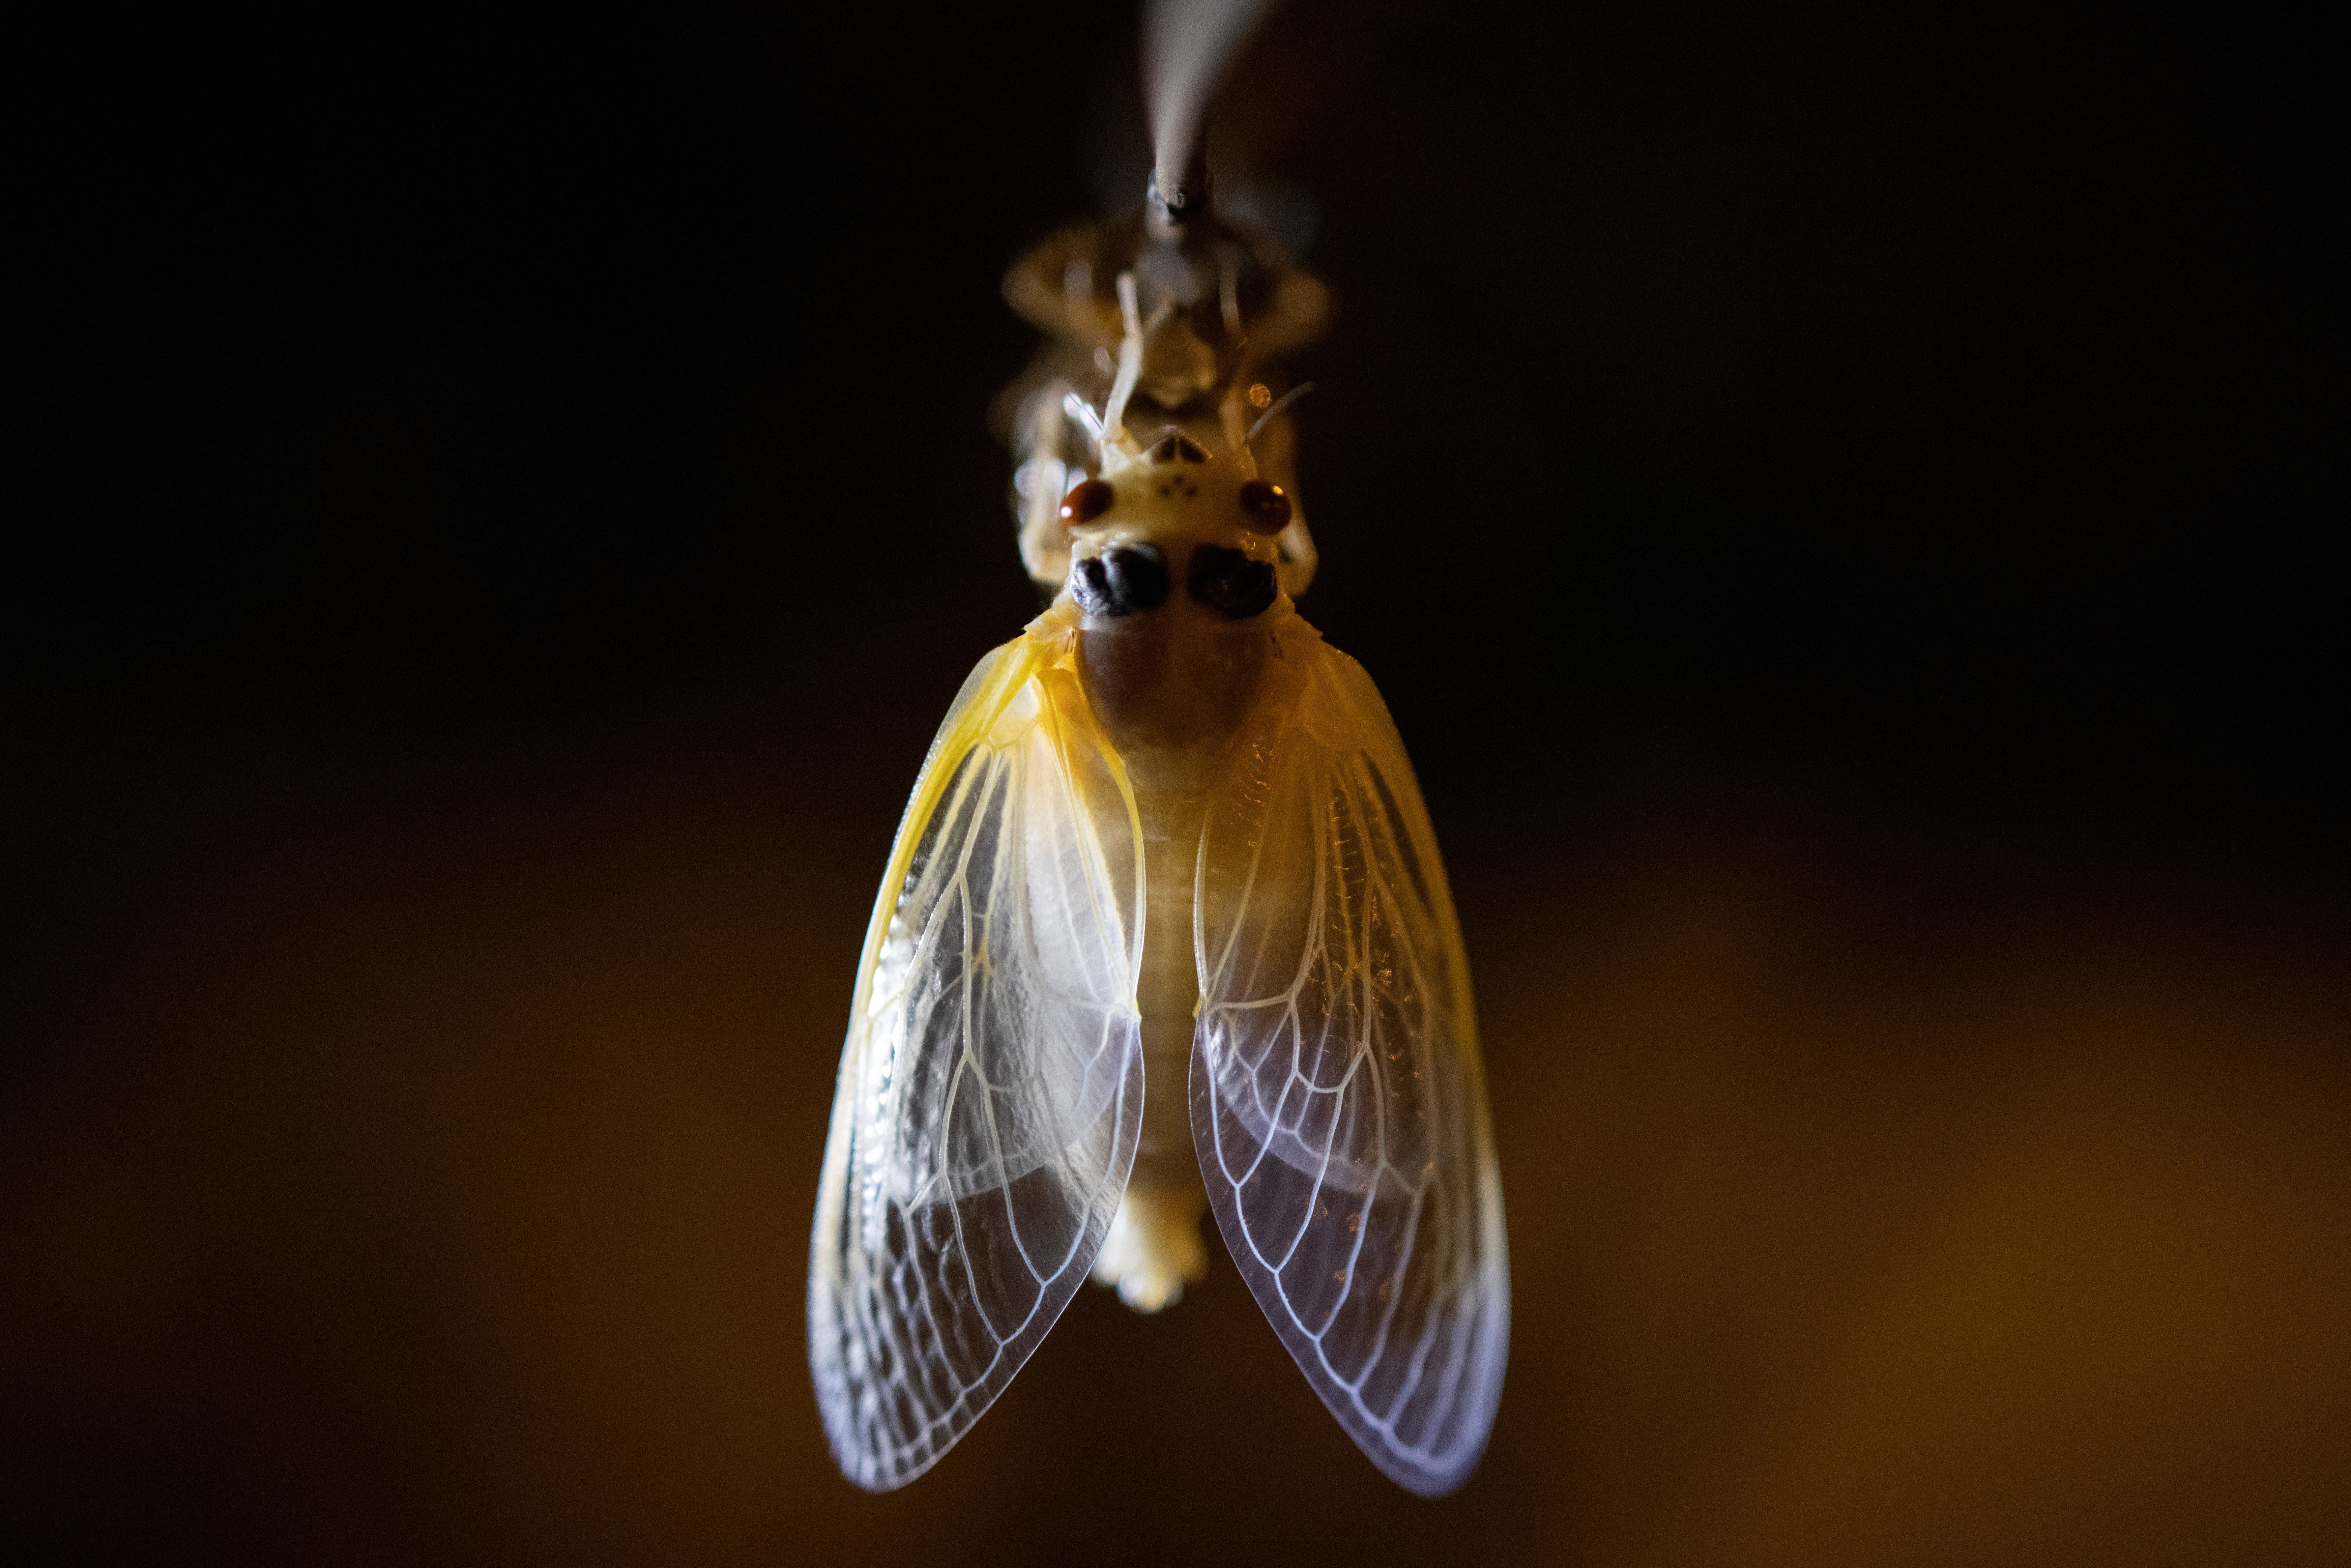 A newly emerged adult cicada dries its wings on a tree near Rock Creek park in Washington D.C., May 18, 2021. REUTERS/Carlos Barria